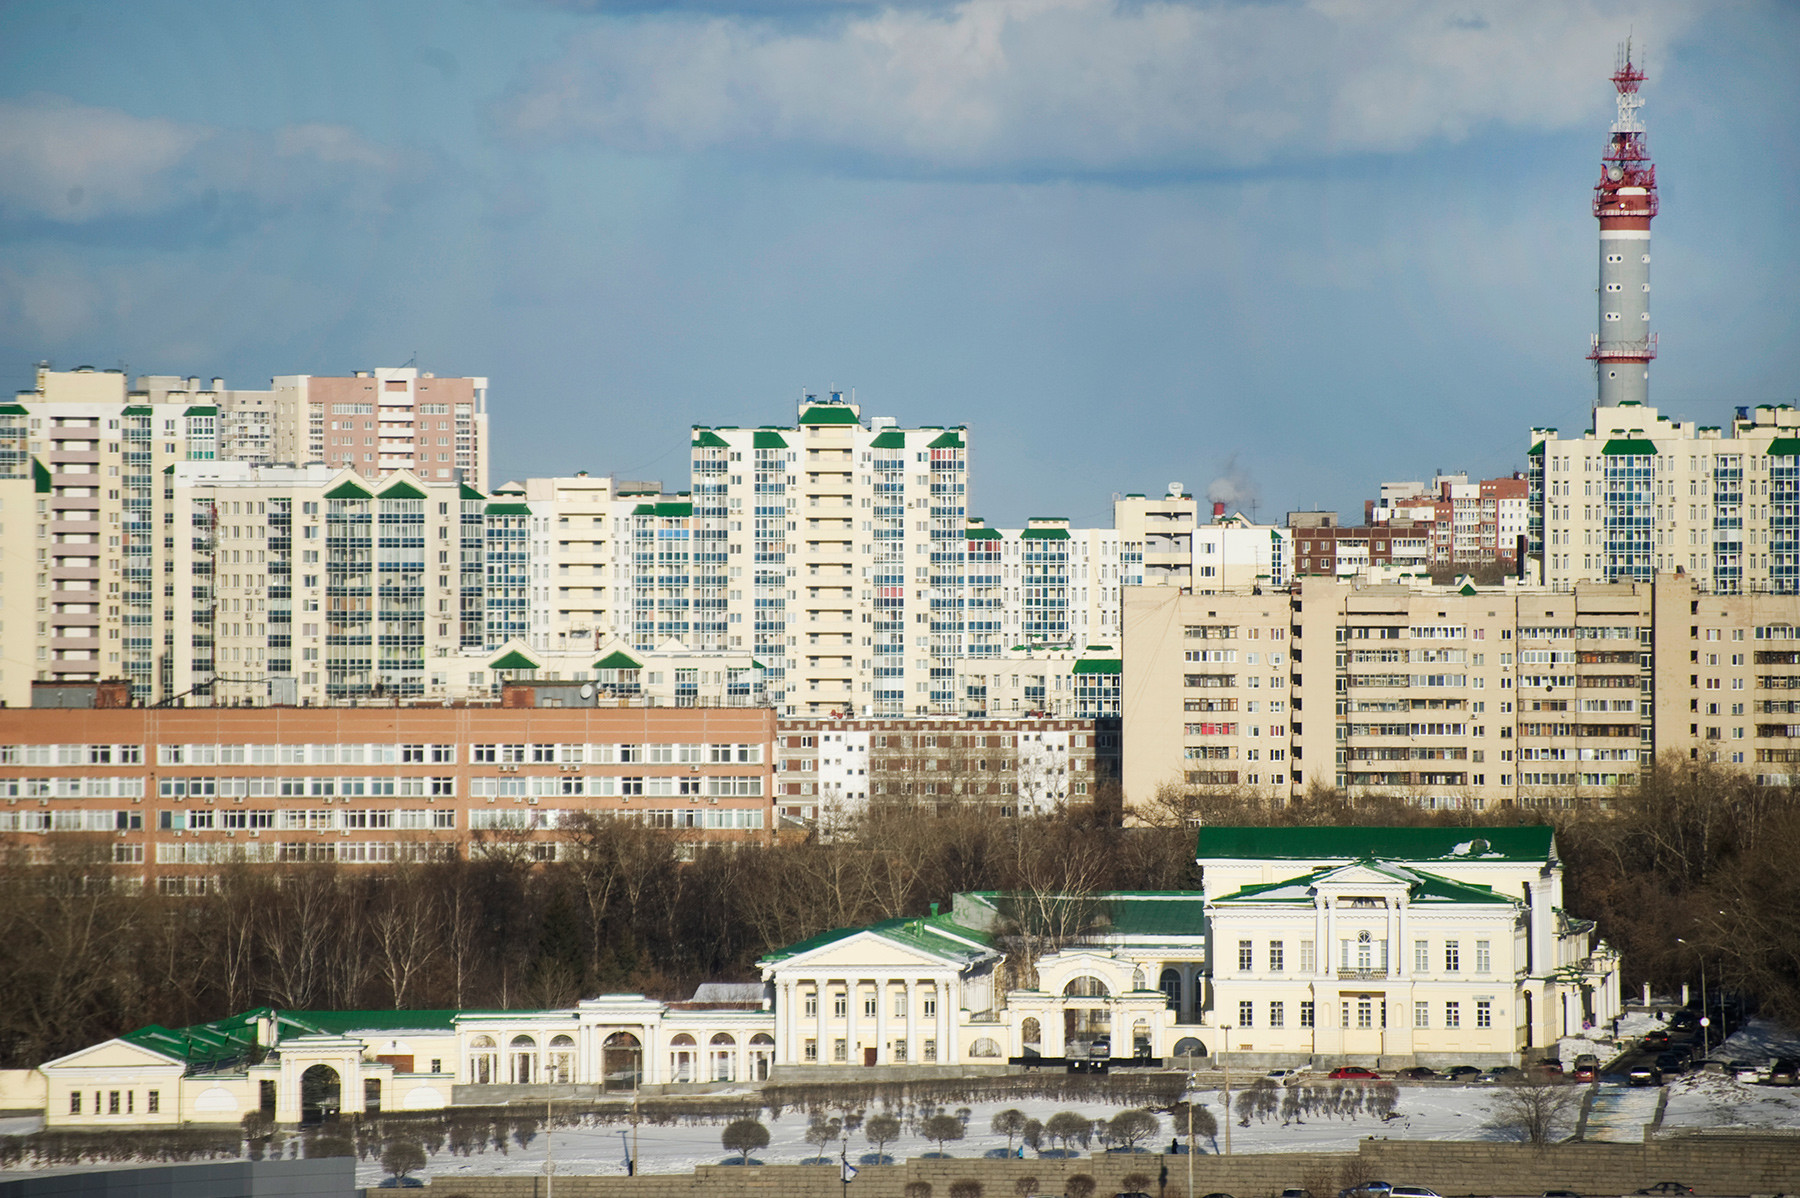 Rastorguev-Kharitonov Mansion. Side facade with high-rise apartment buildings in background. April 1, 2017.